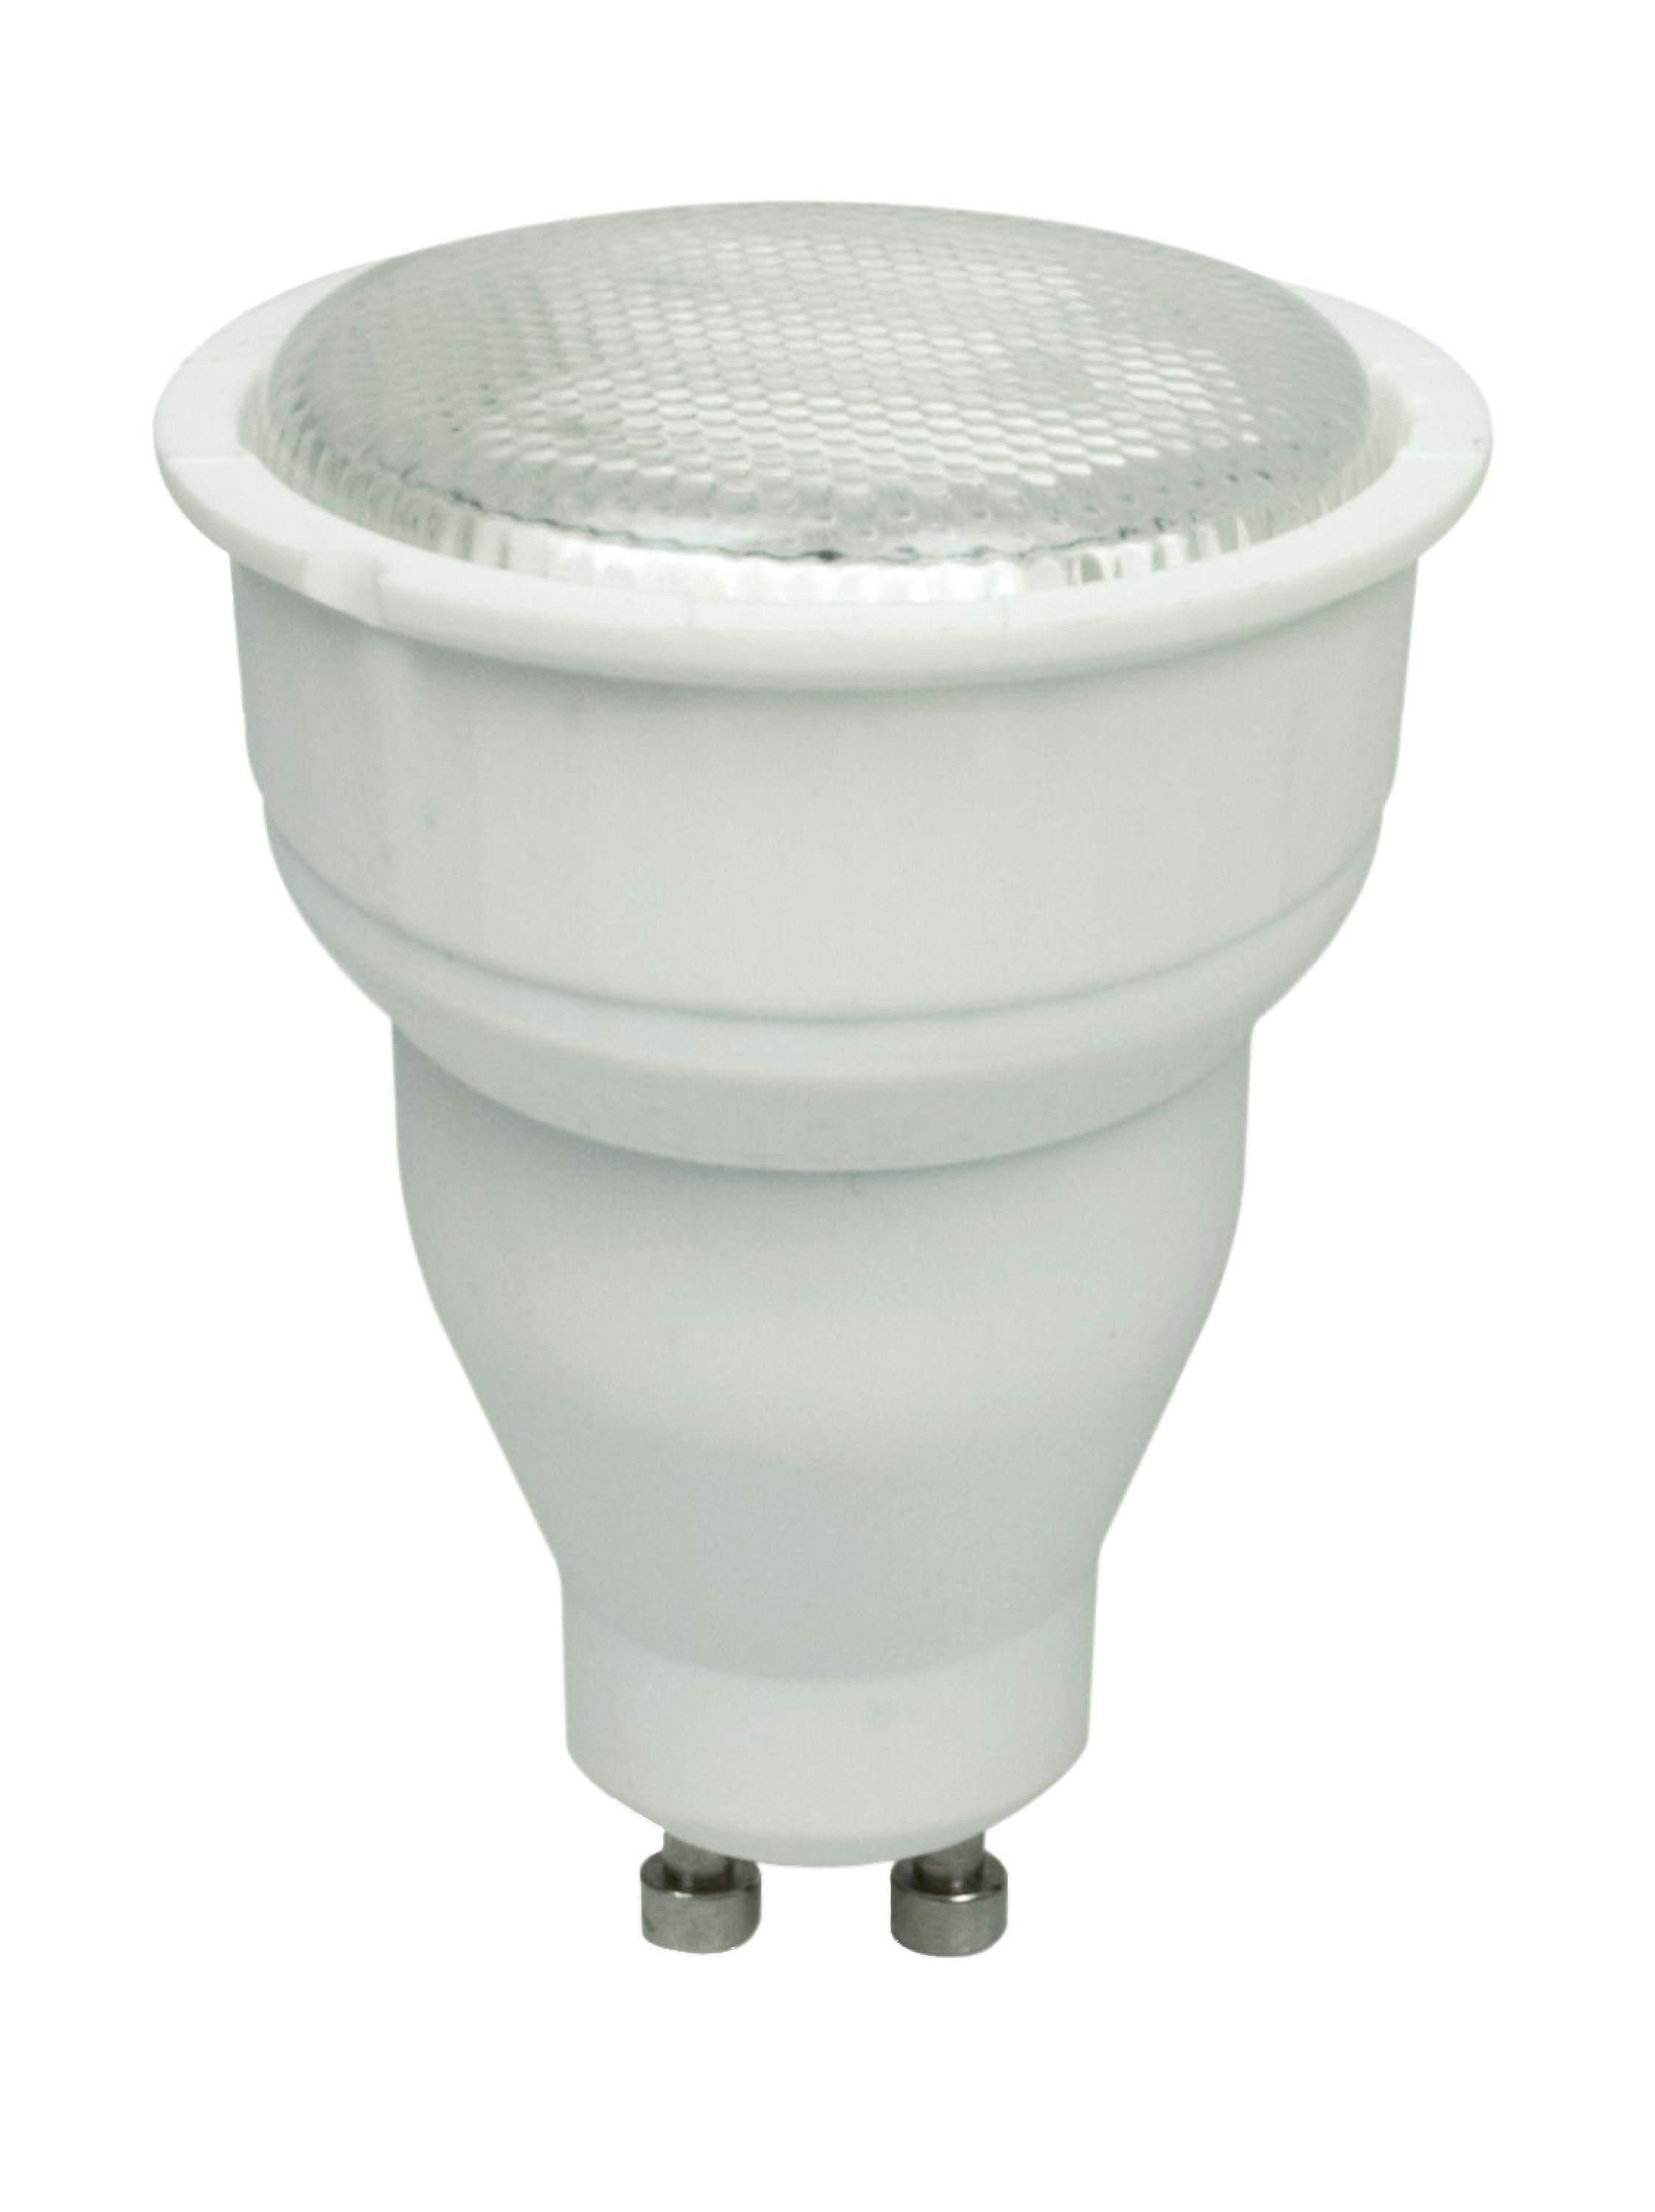 Flickering 'Flame' Effect bulb (large screw cap)